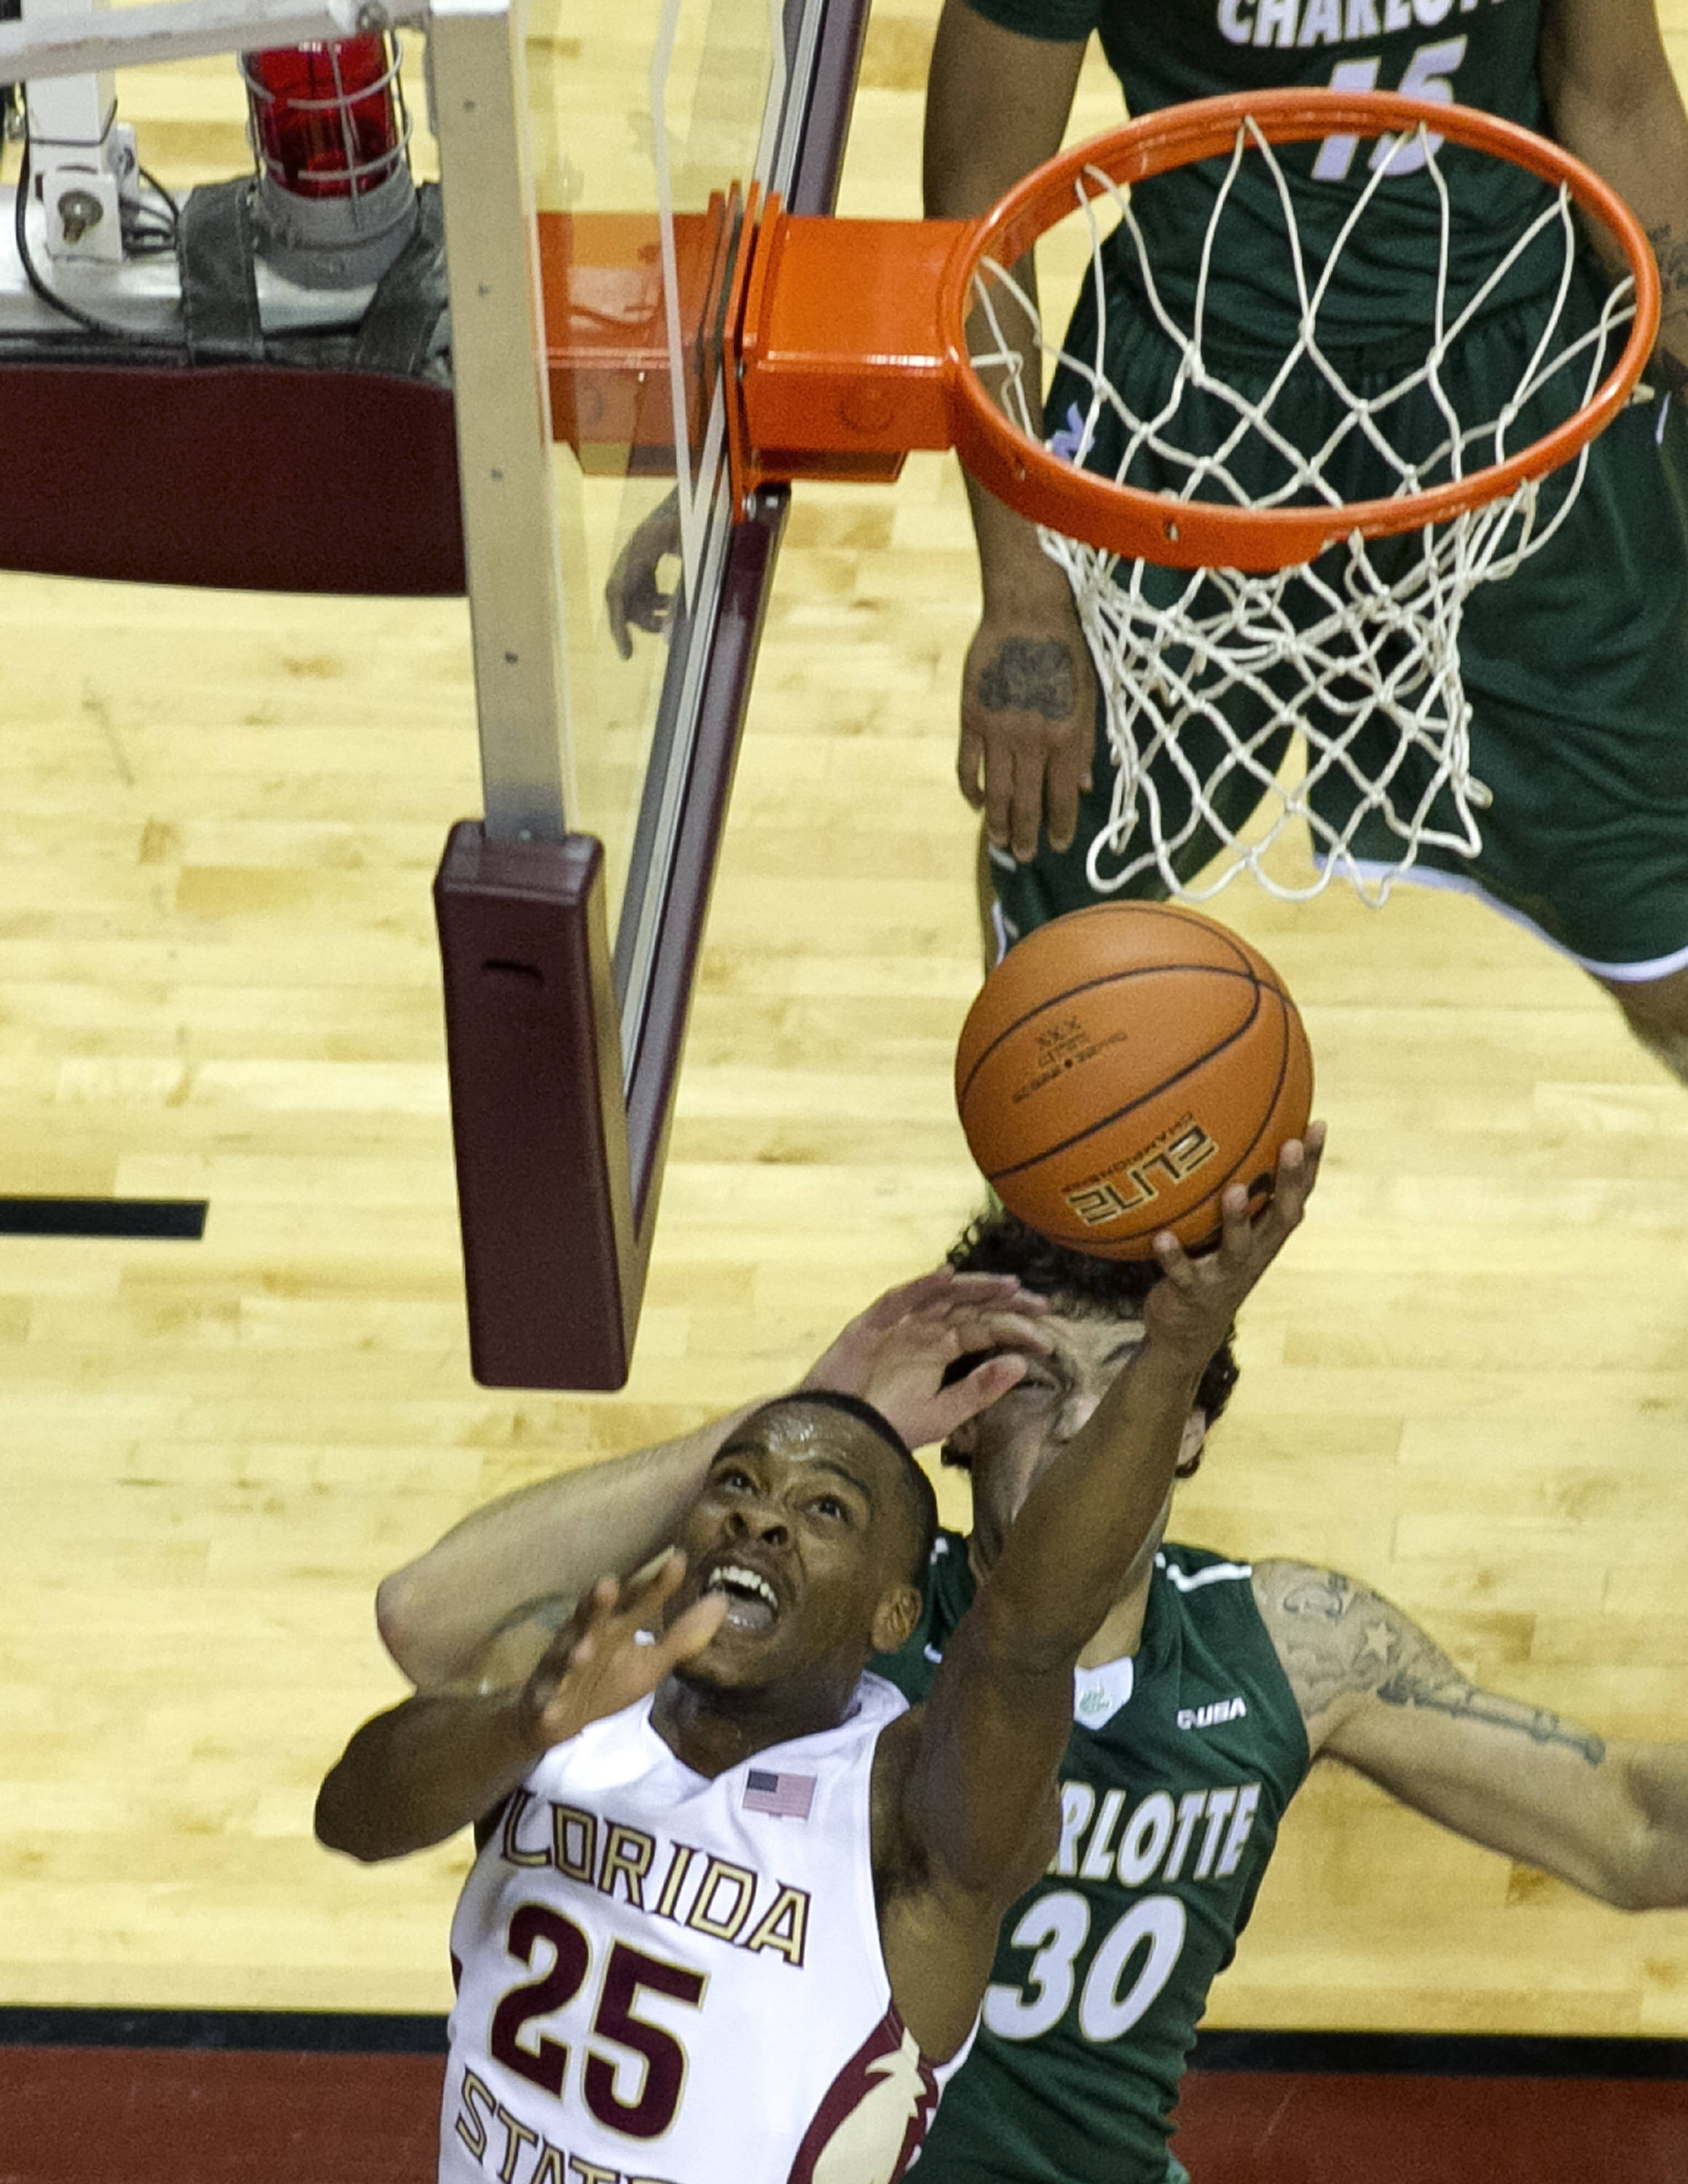 Aaron Thomas (25) with a reverse lay-up, FSU vs Charlotte, 12-17-13,  (Photo by Steve Musco)